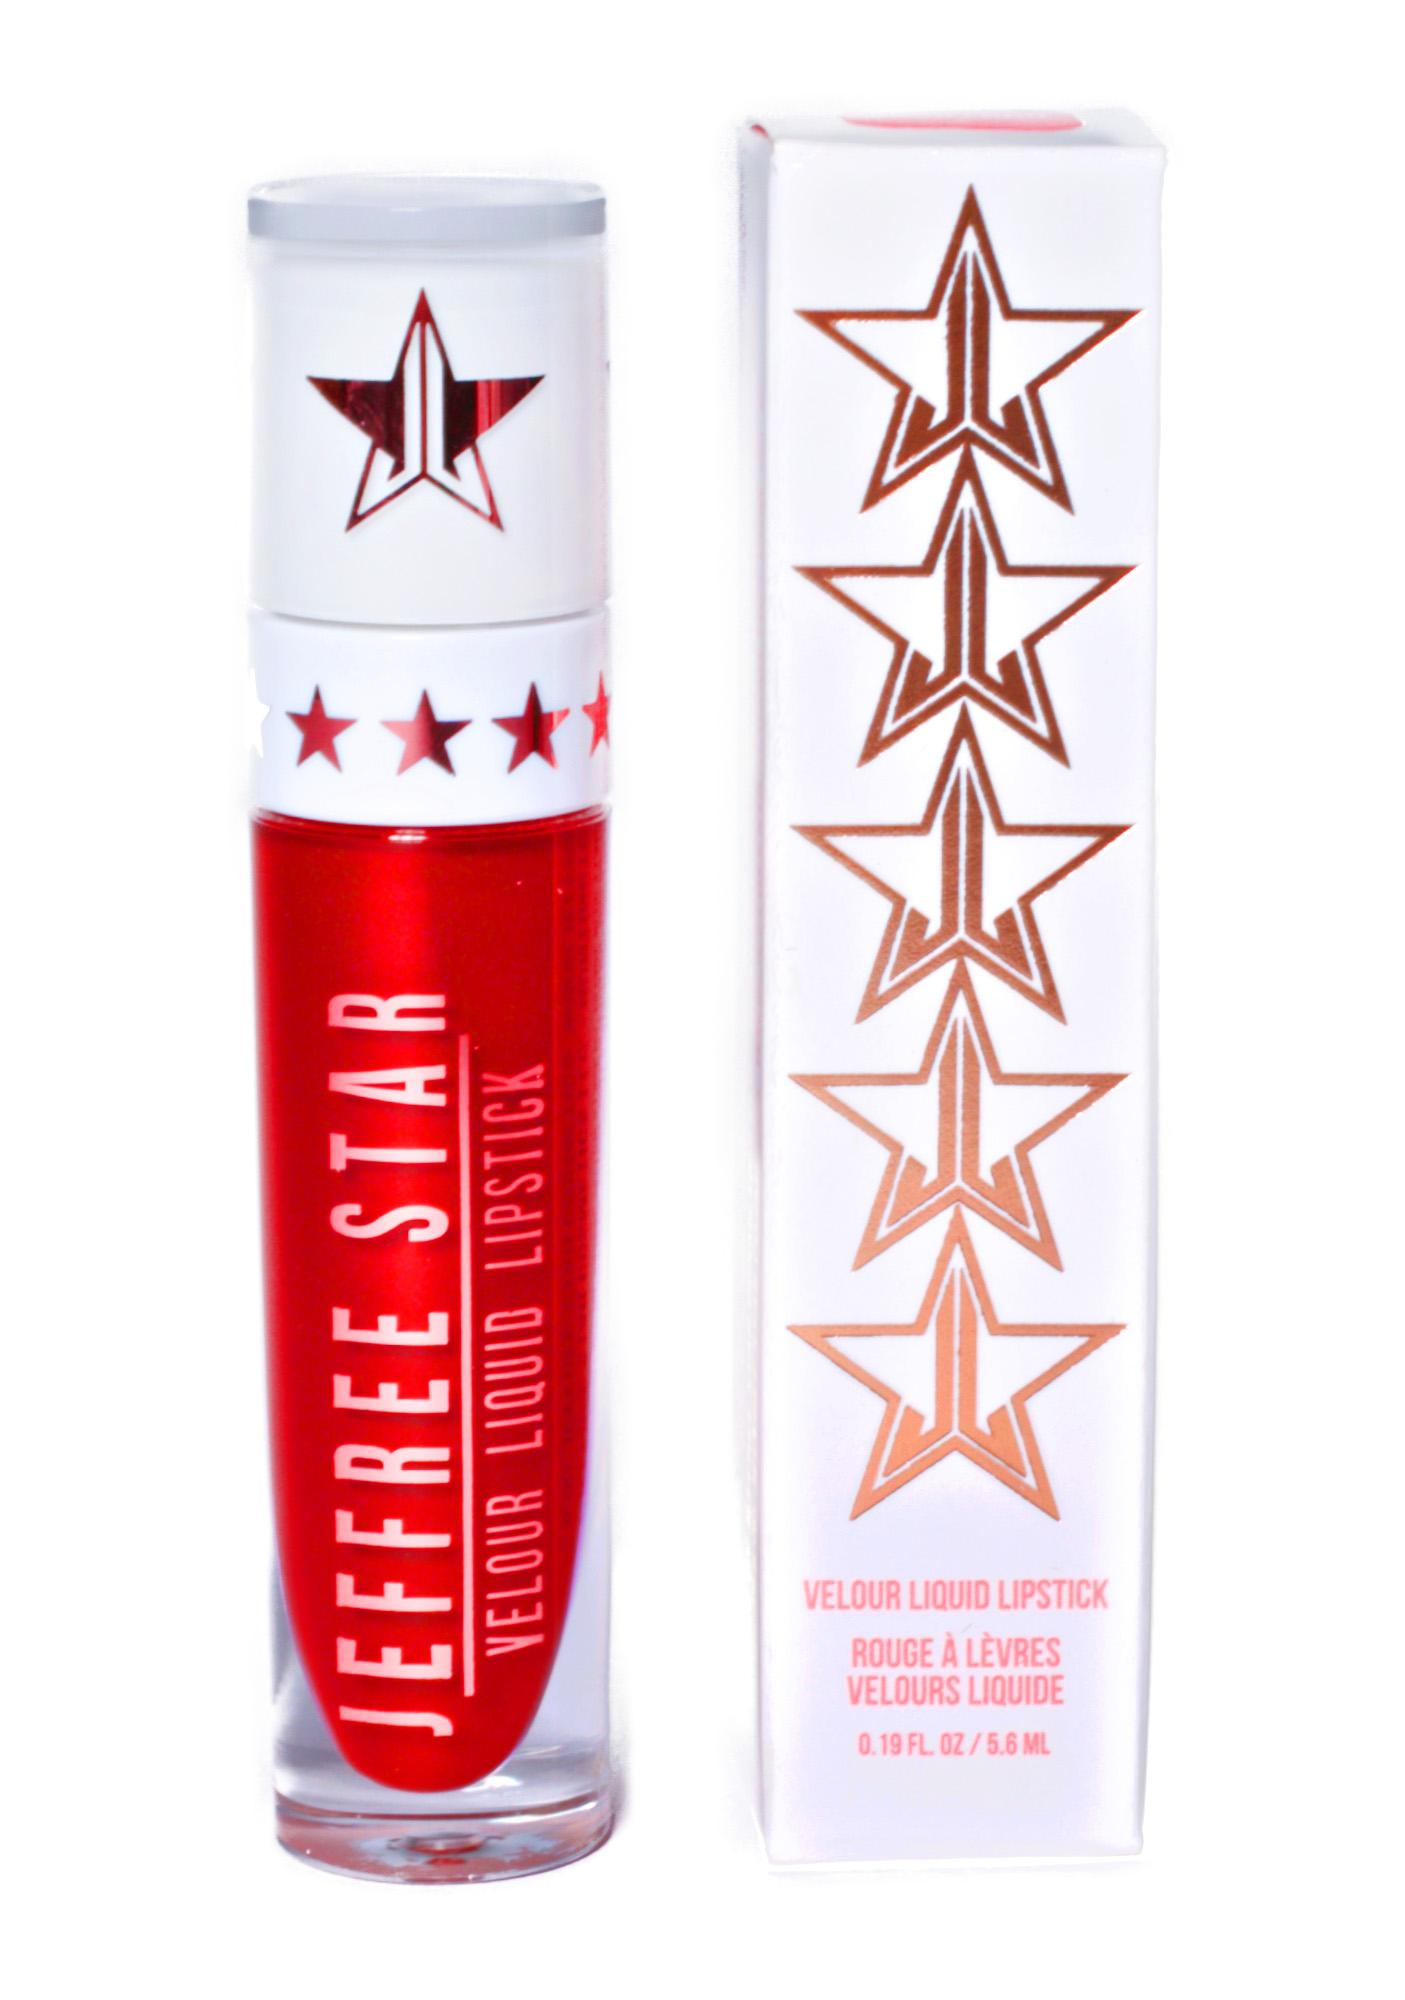 Jeffree Star Hoe Hoe Hoe Liquid Lipstick